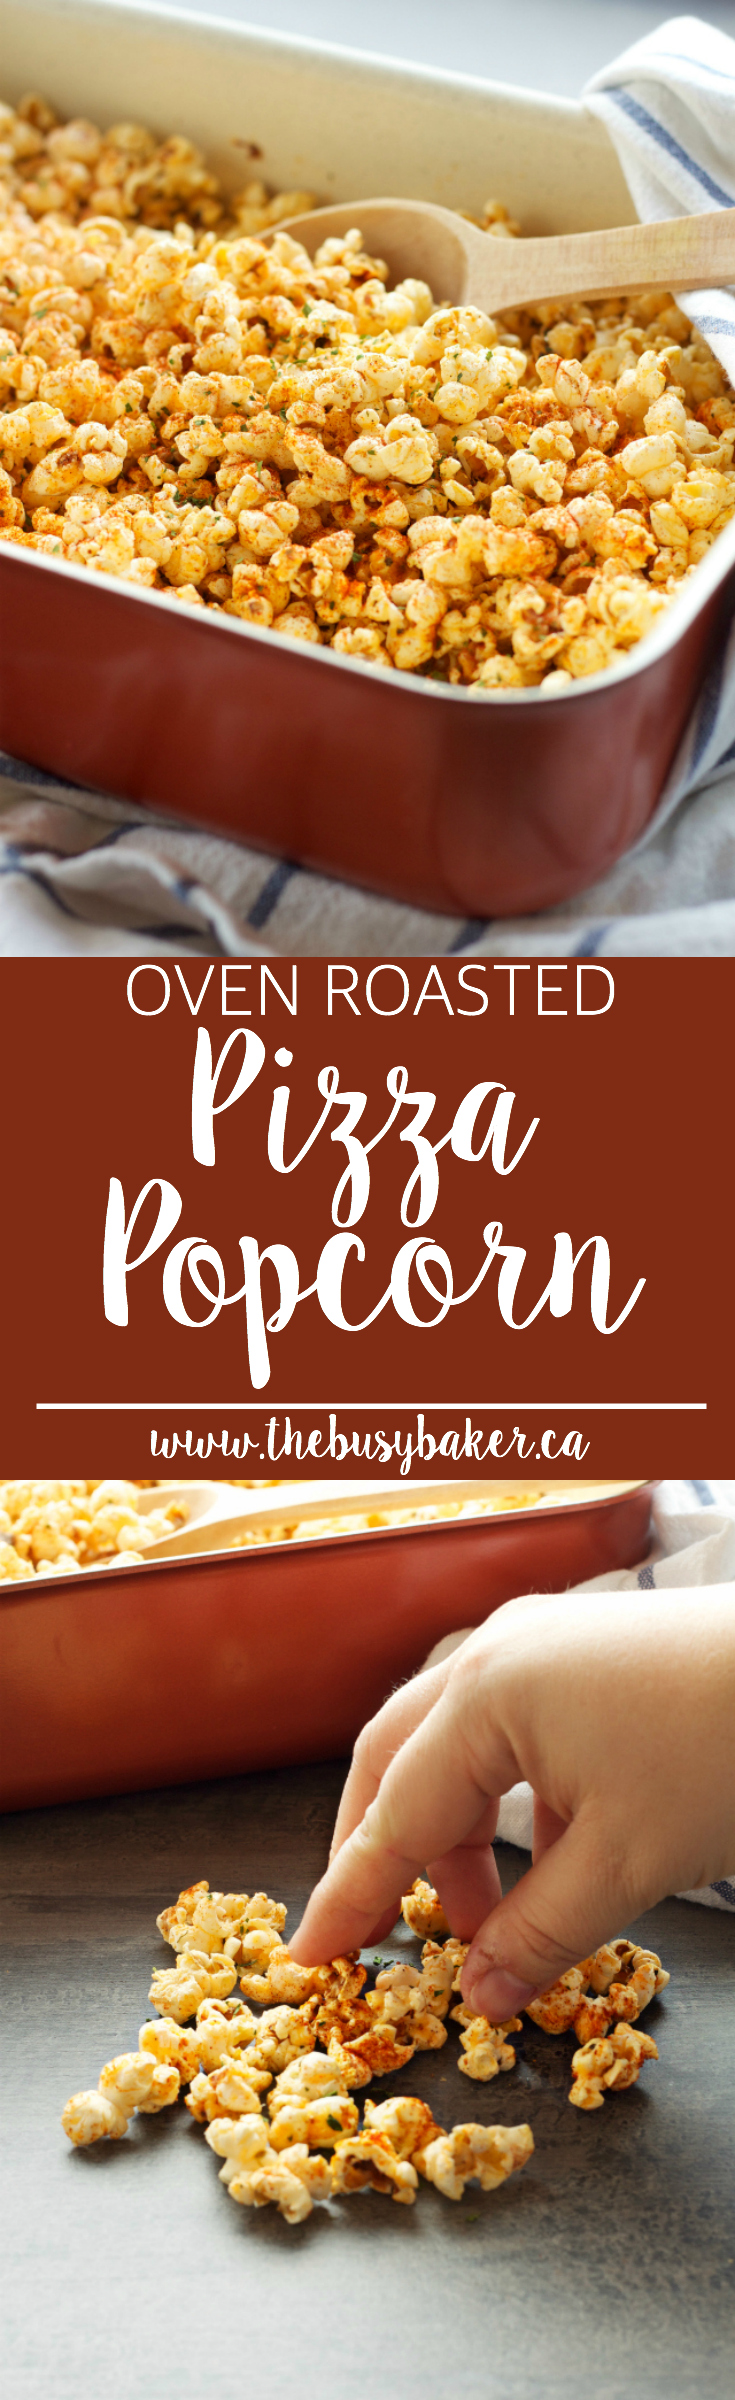 This Oven Roasted Pizza Popcorn is flavoured with Italian spices and sharp cheese, and makes a great snack or edible gift! via @busybakerblog